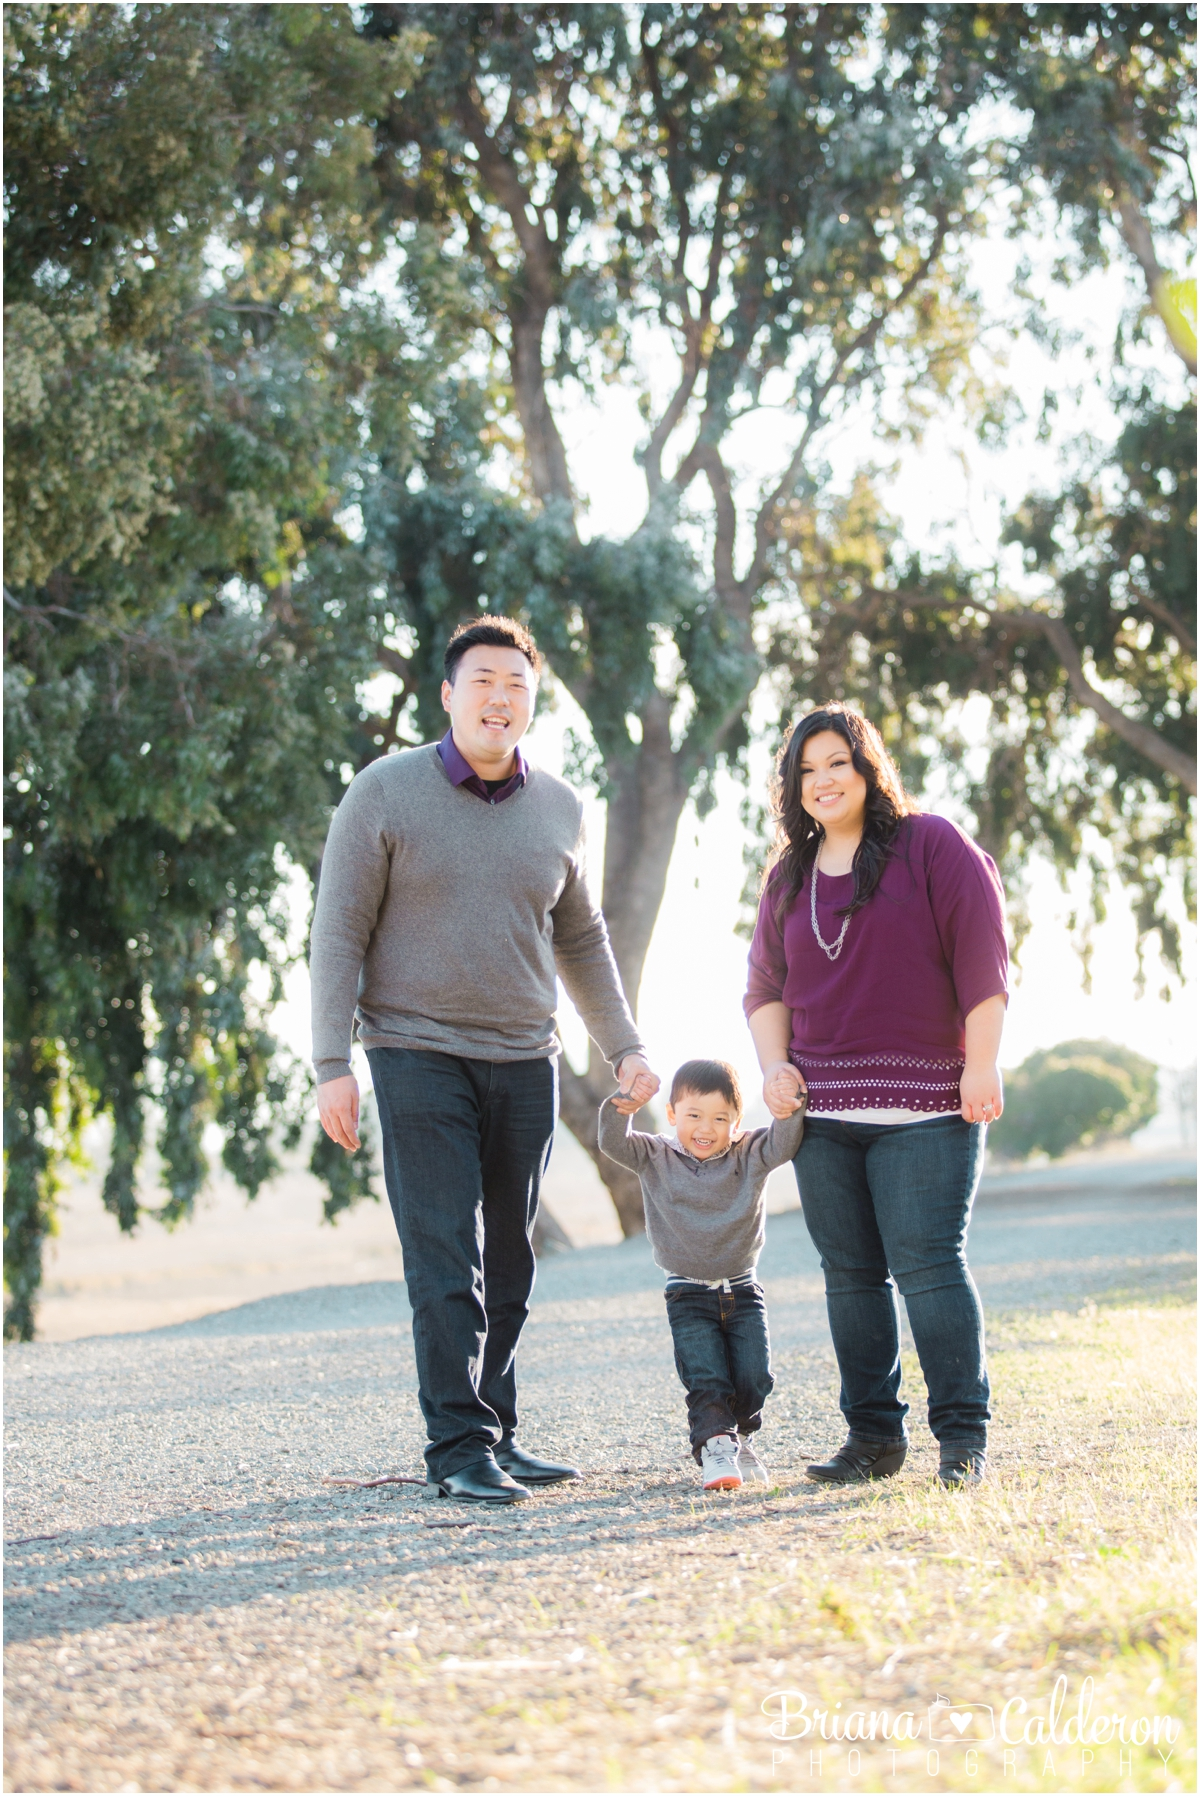 Family photo shoot in Fremont, CA. Photos by Briana Calderon Photography based in the San Francisco Bay Area in California.